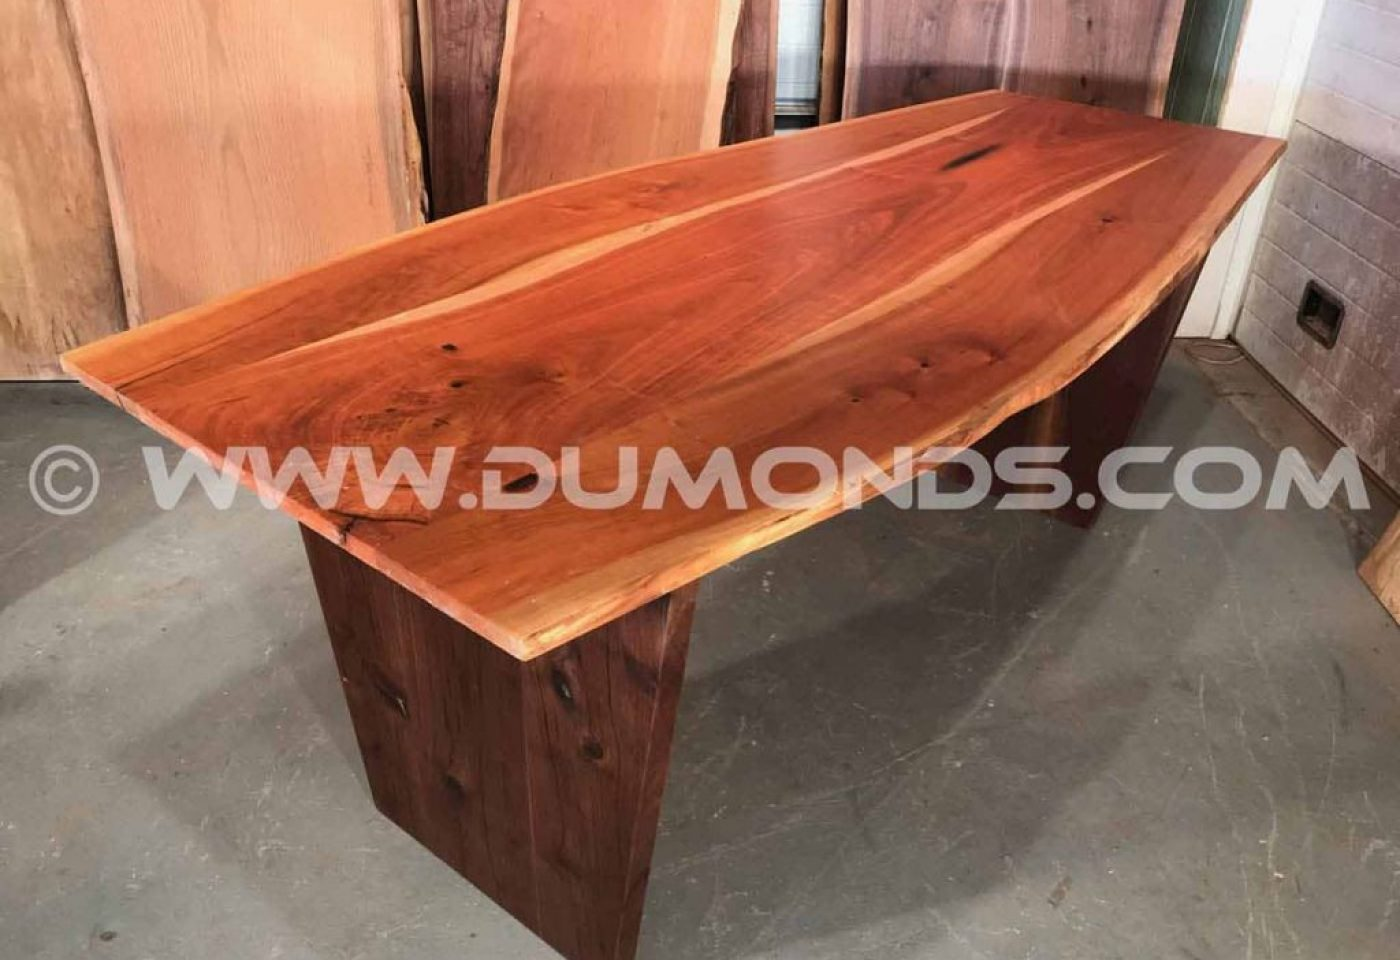 PENNSYLVANIA CHERRY BOAT SHAPED TABLE WITH WALNUT BASE